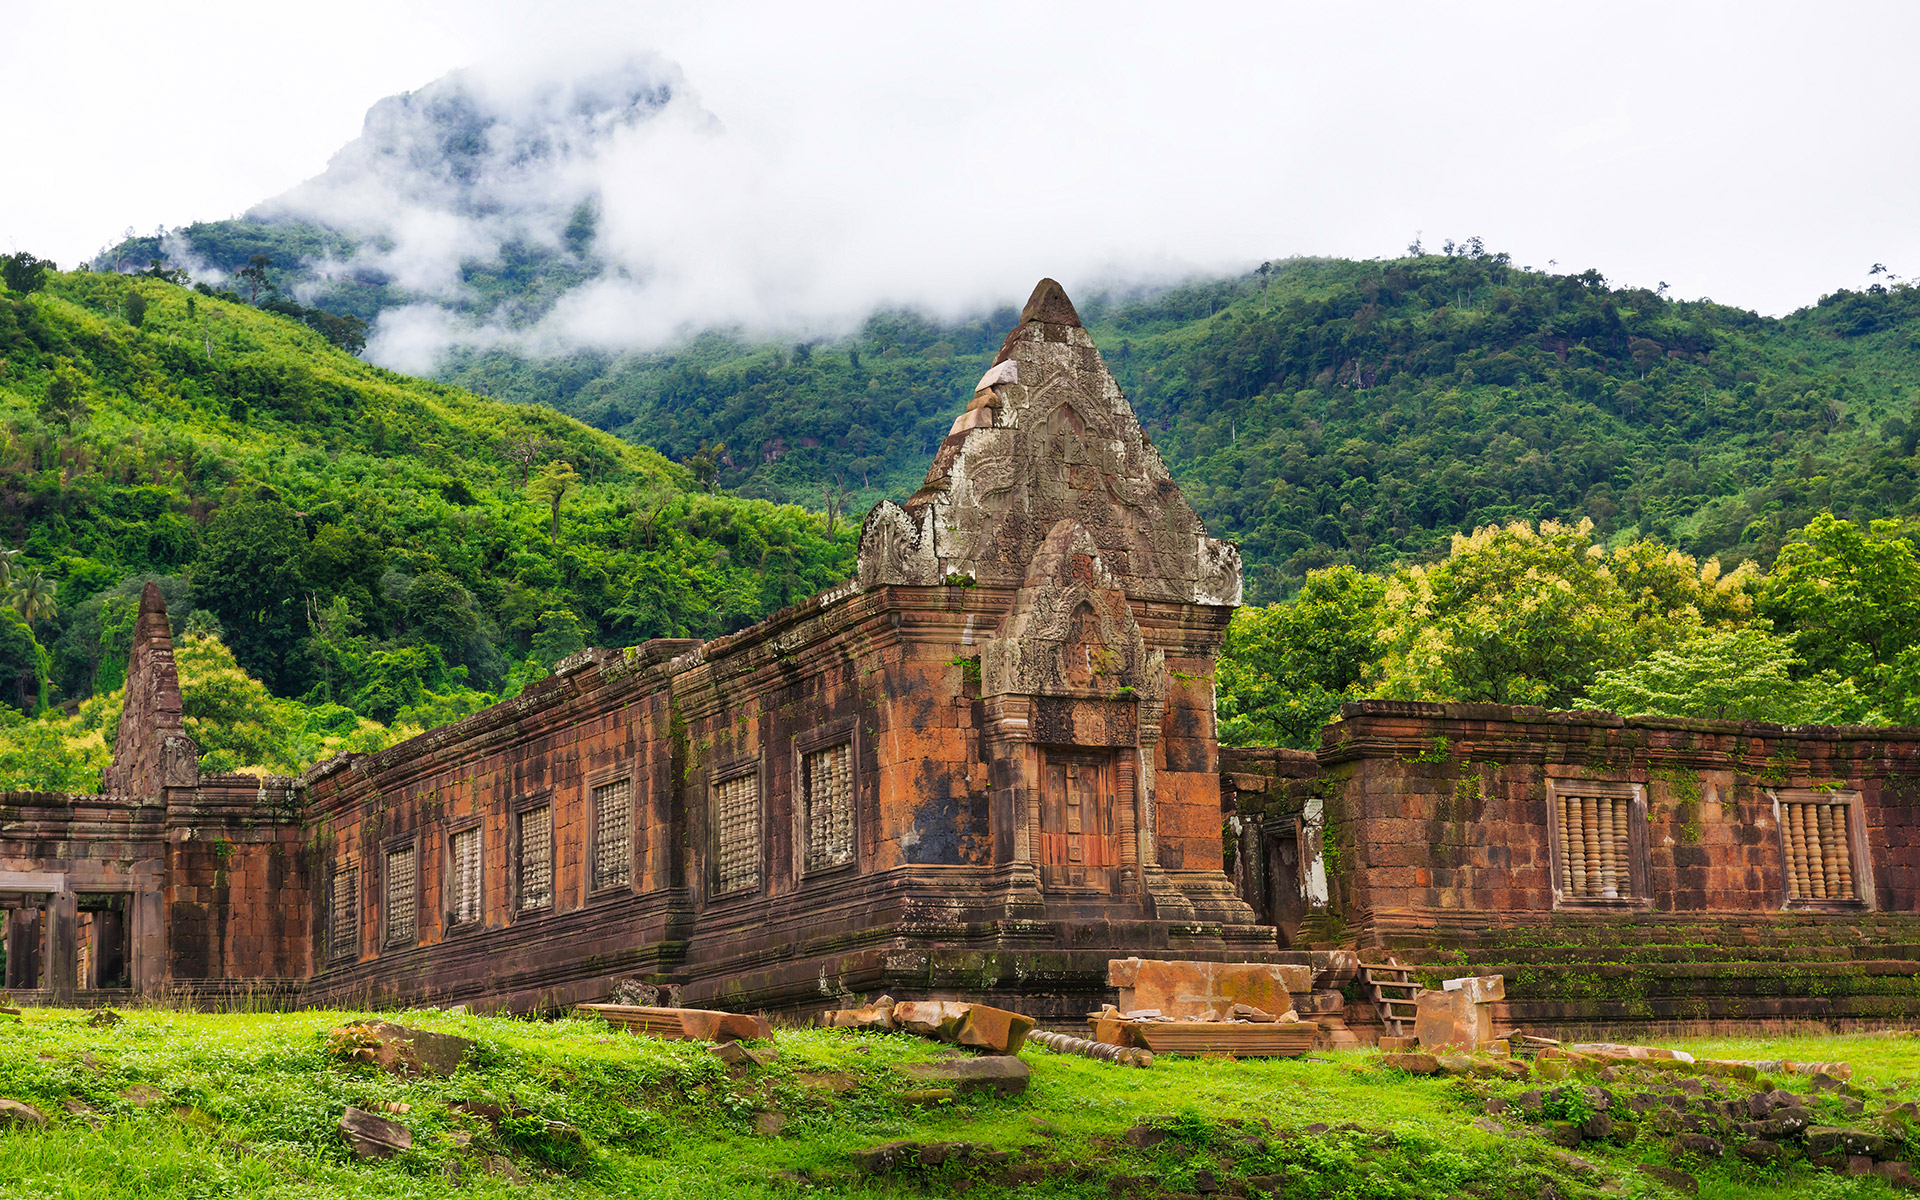 Wat Phou - a World Heritage Site in Champasak Province of Southern Laos